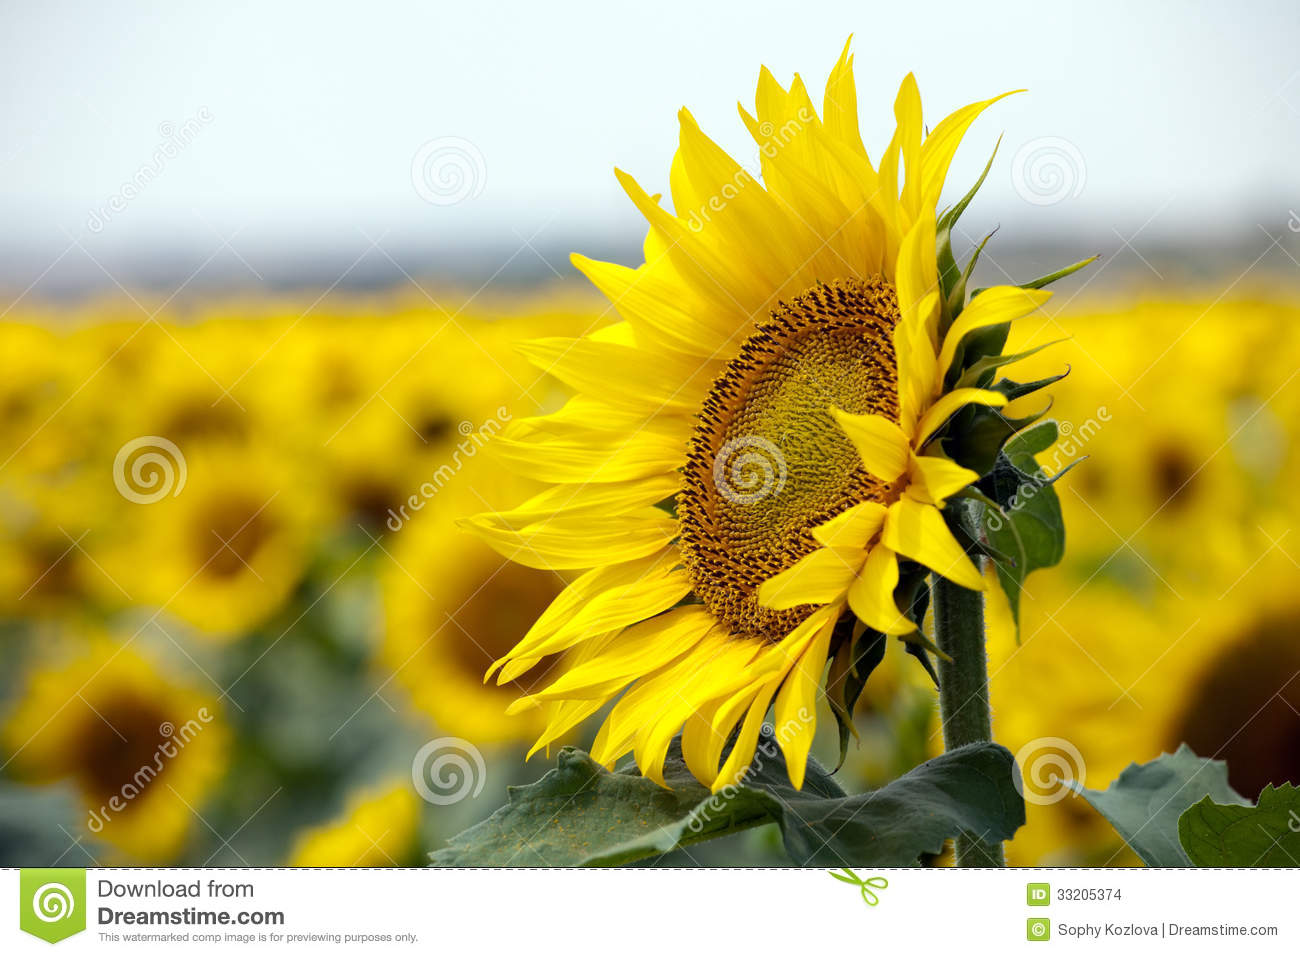 sunflower single catholic girls Men, here are a few catholic dating snags you don't want to get caught up in.